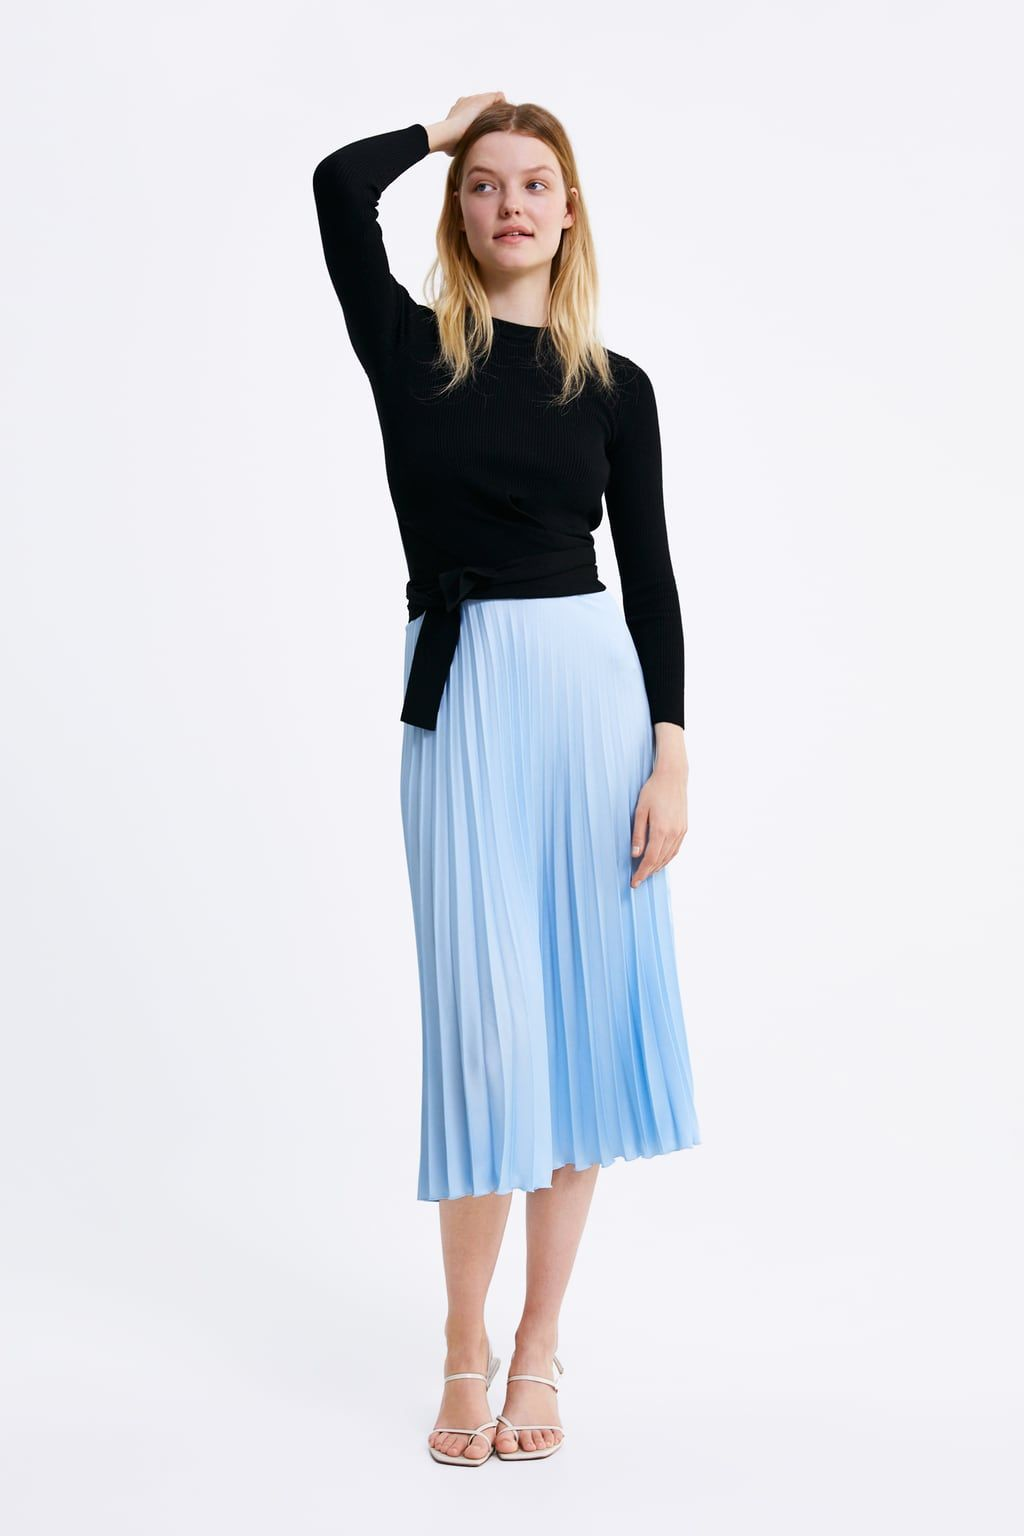 431e34d7d2 Pleated skirt in 2019 | I Want It Now, Daddy! | Skirts, Zara pleated ...